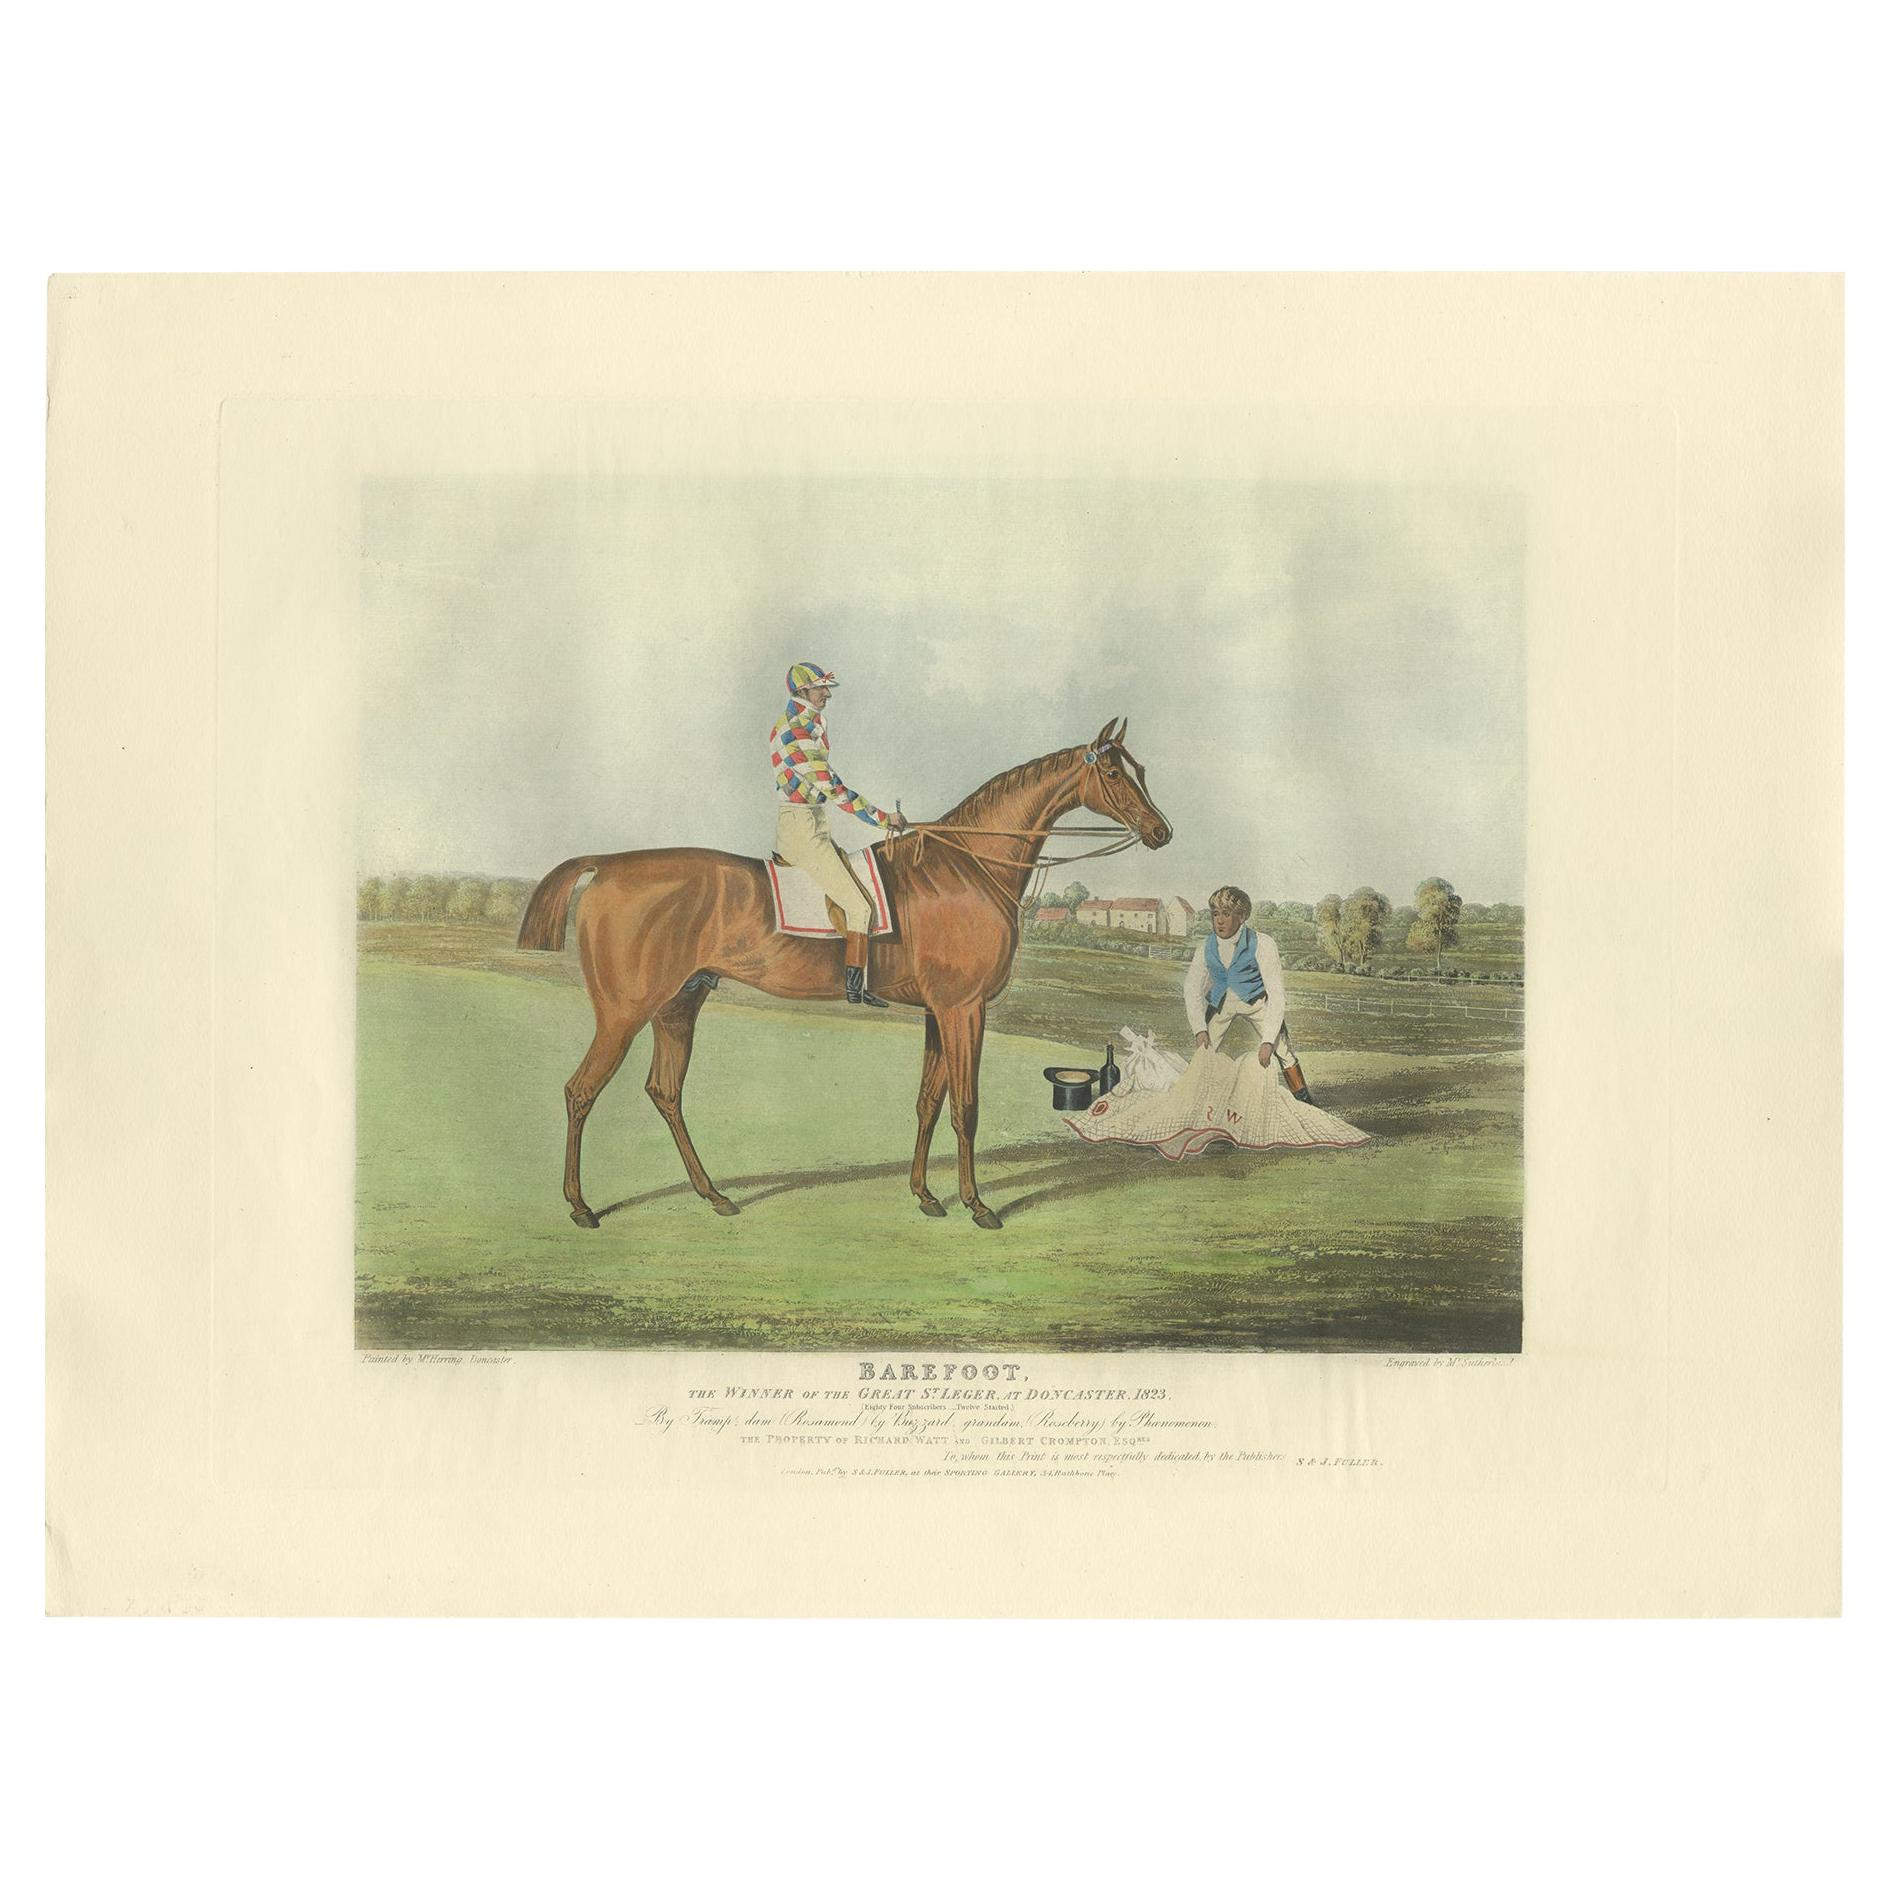 Antique Print of the Winning Horse 'Barefoot' and a Jockey 'c.1840'